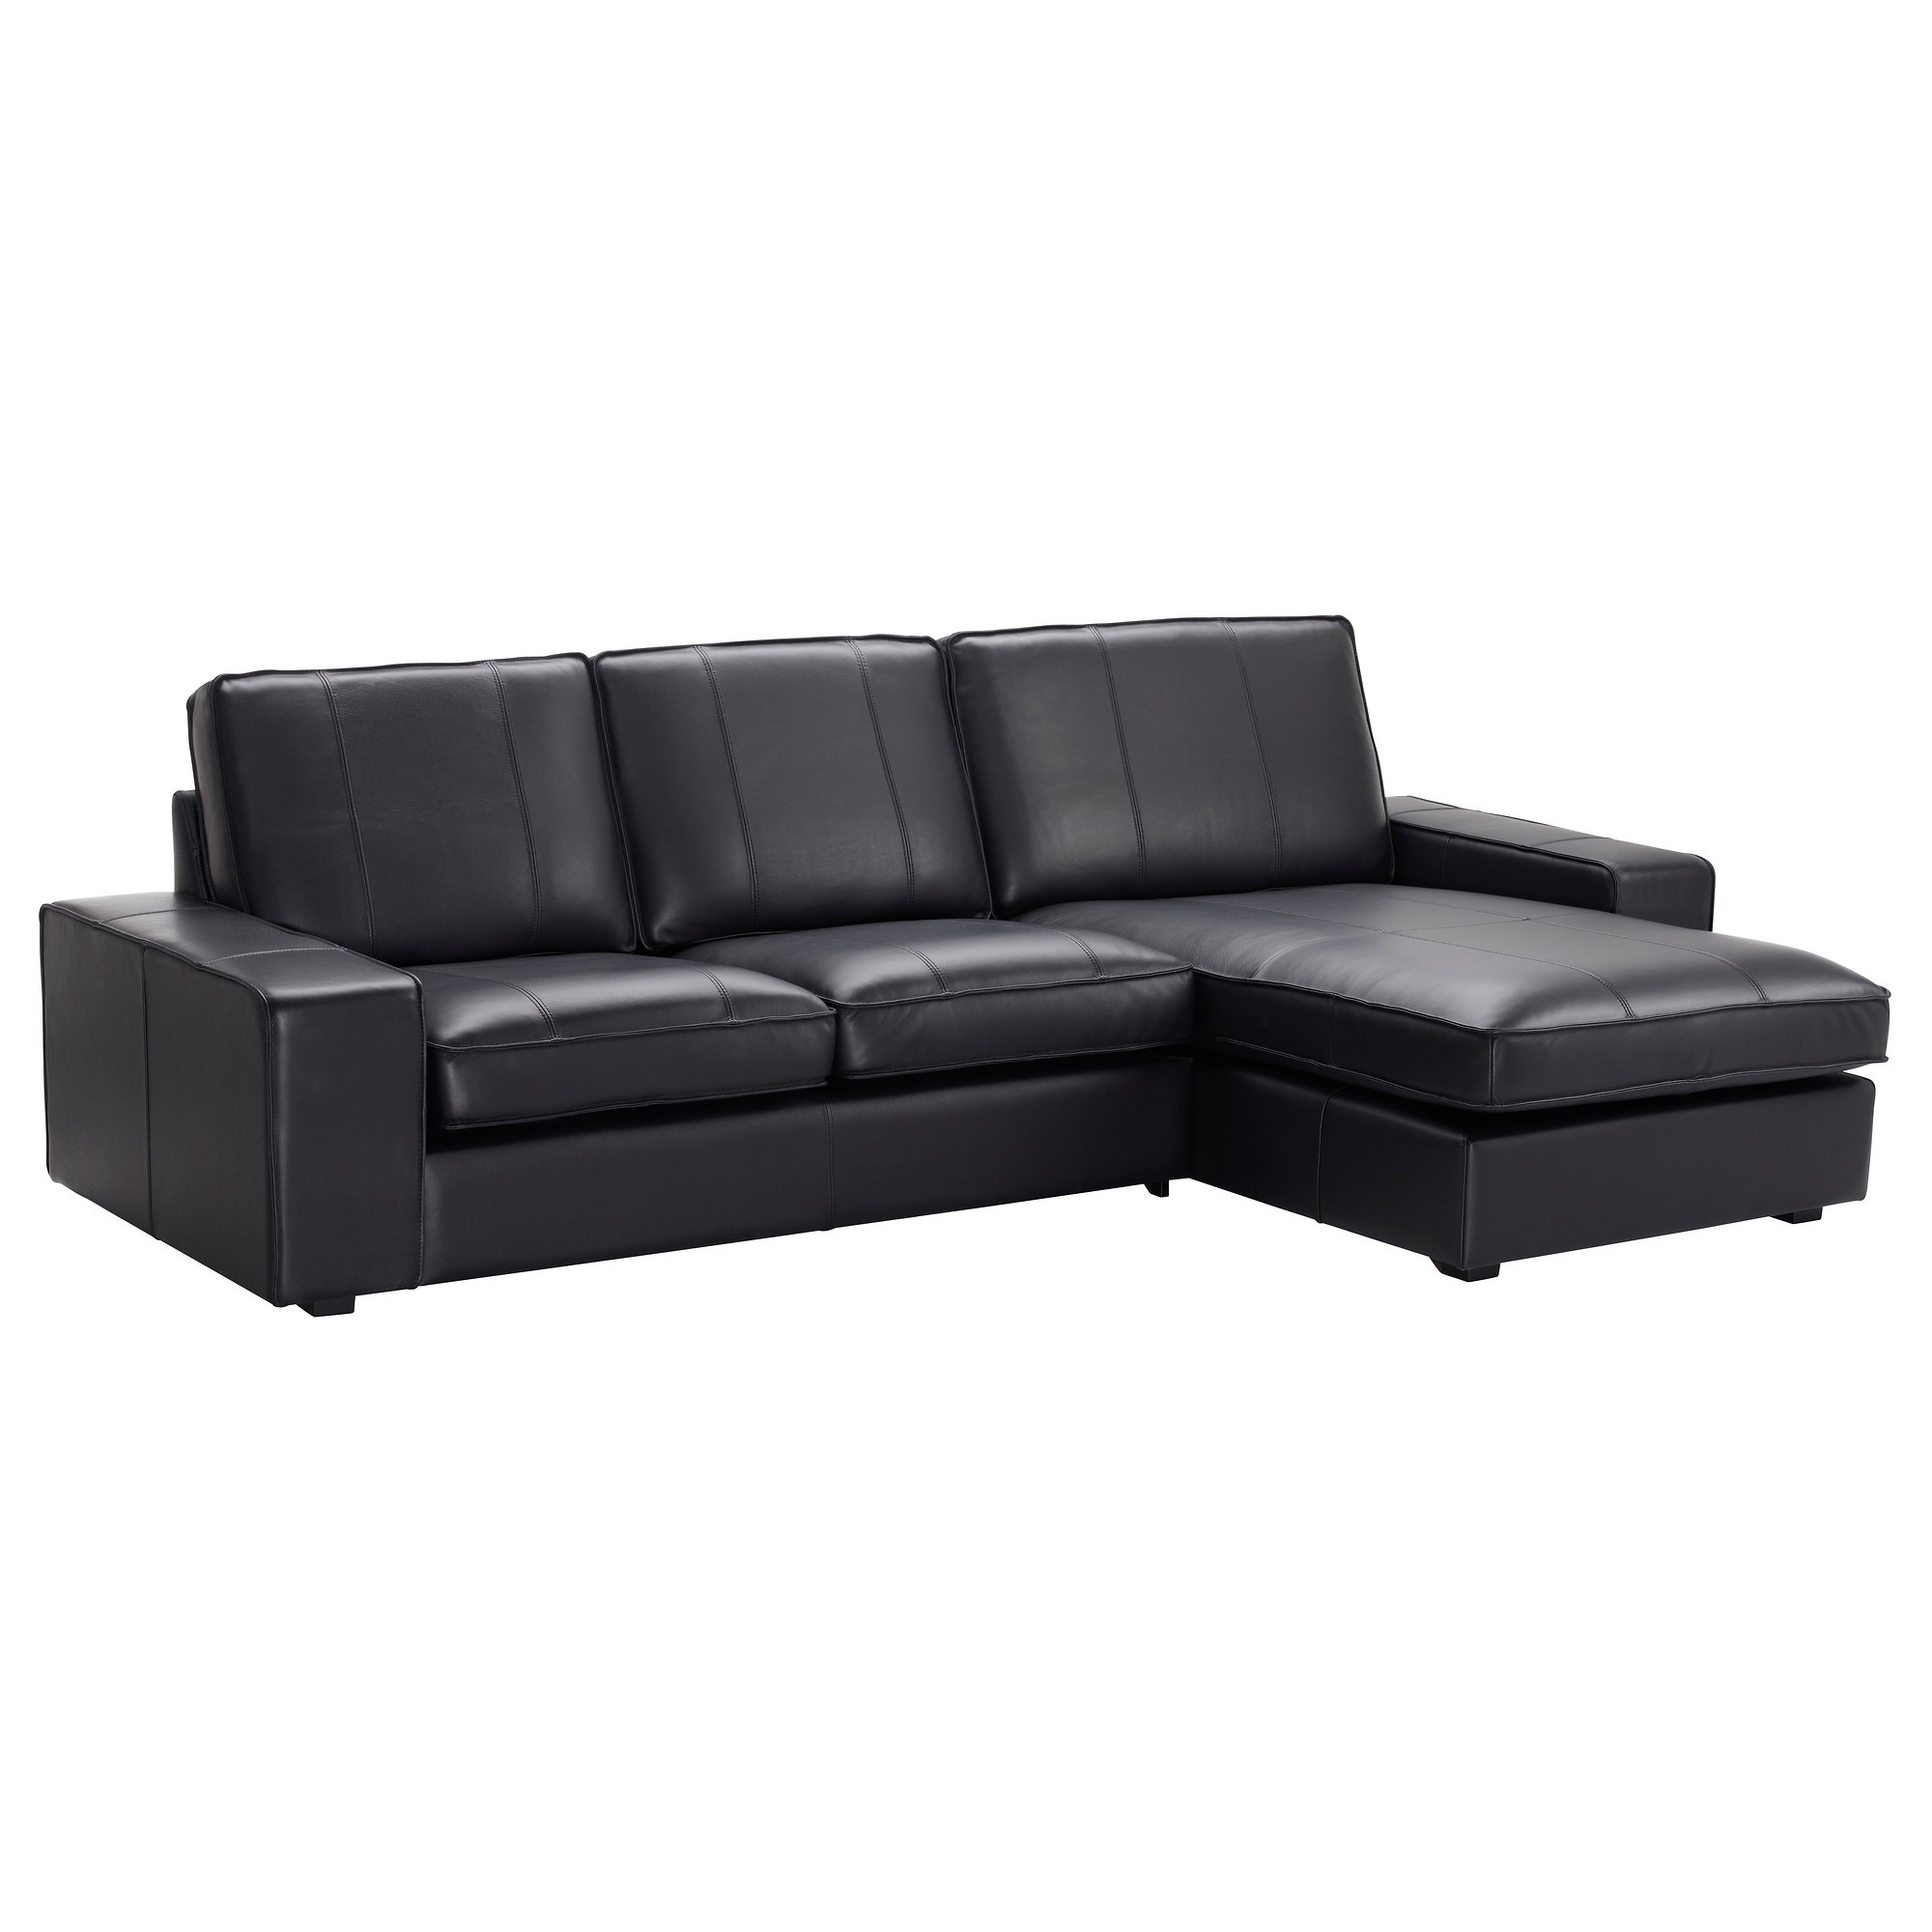 Canape cuir ikea 2 places canap id es de d coration for Ikea canape 2 places